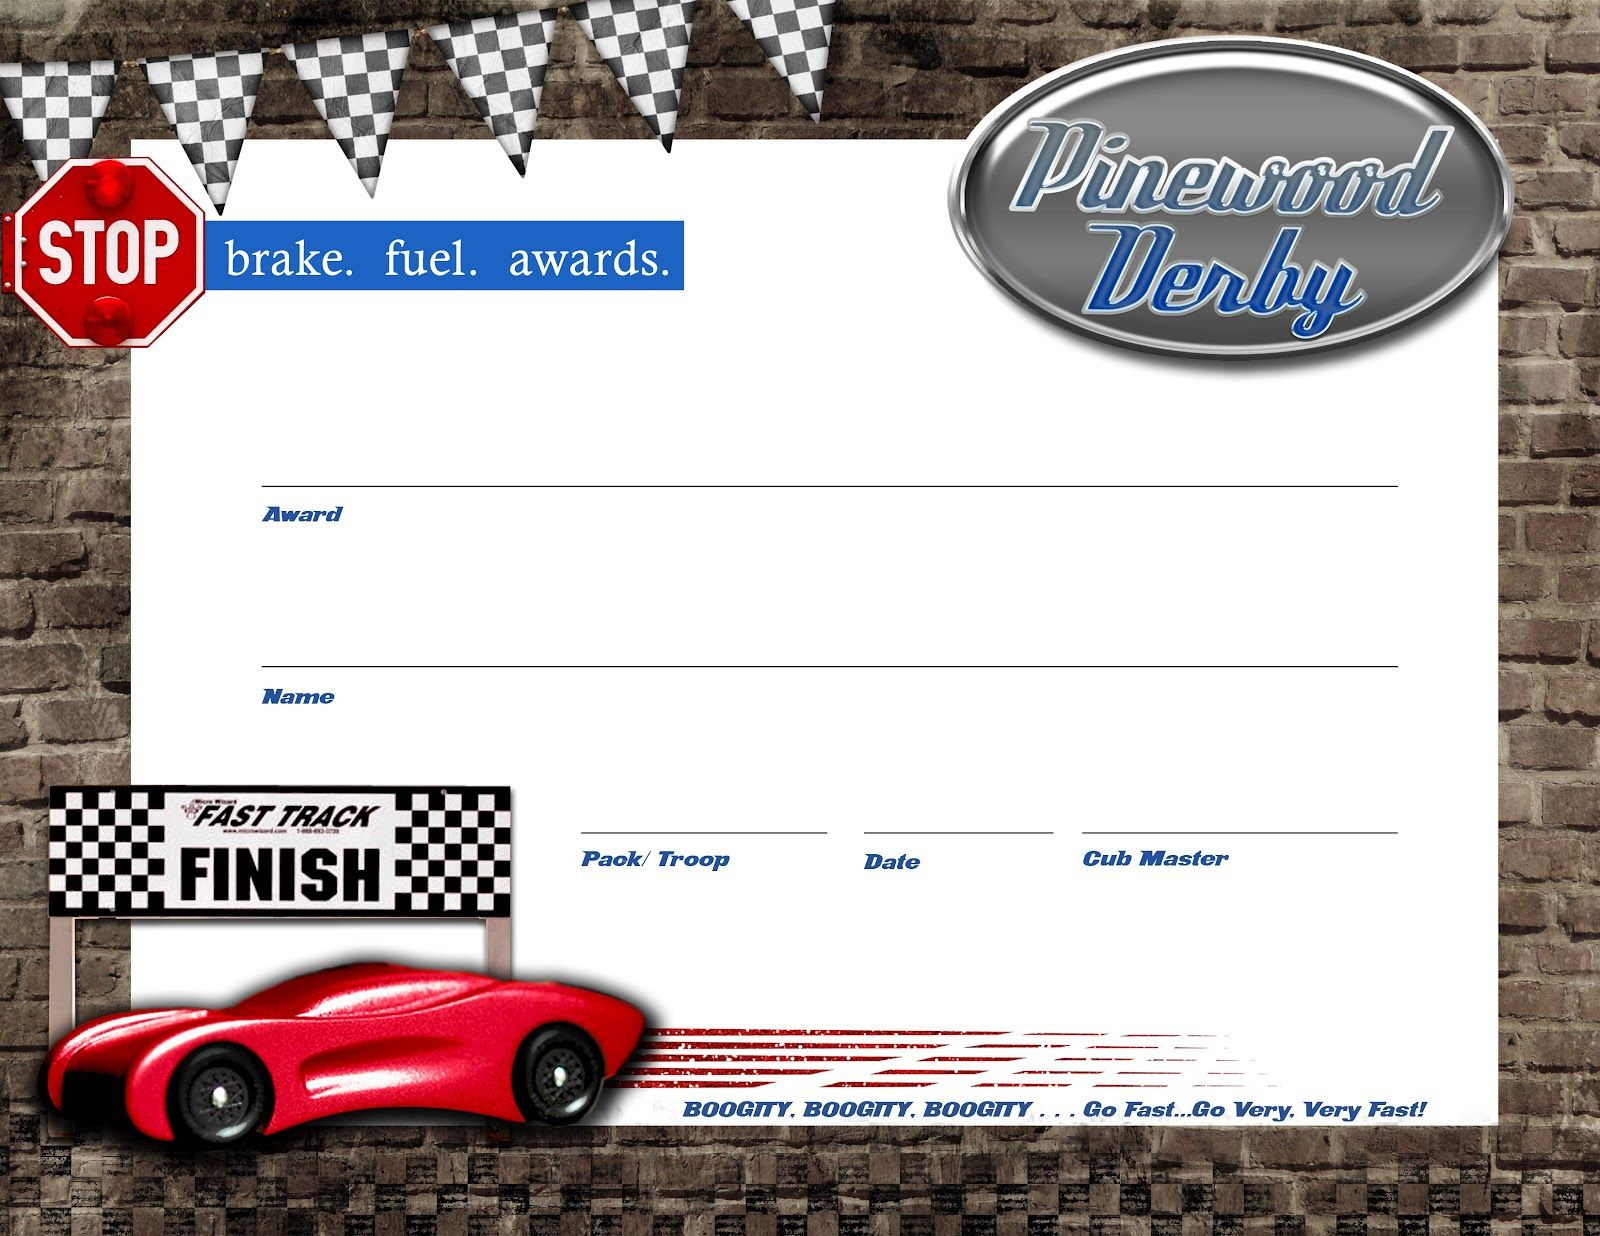 Pinewood Derby Certificate - Free Download + Lanyards | Boy Scouts Pertaining To Pinewood Derby Certificate Template